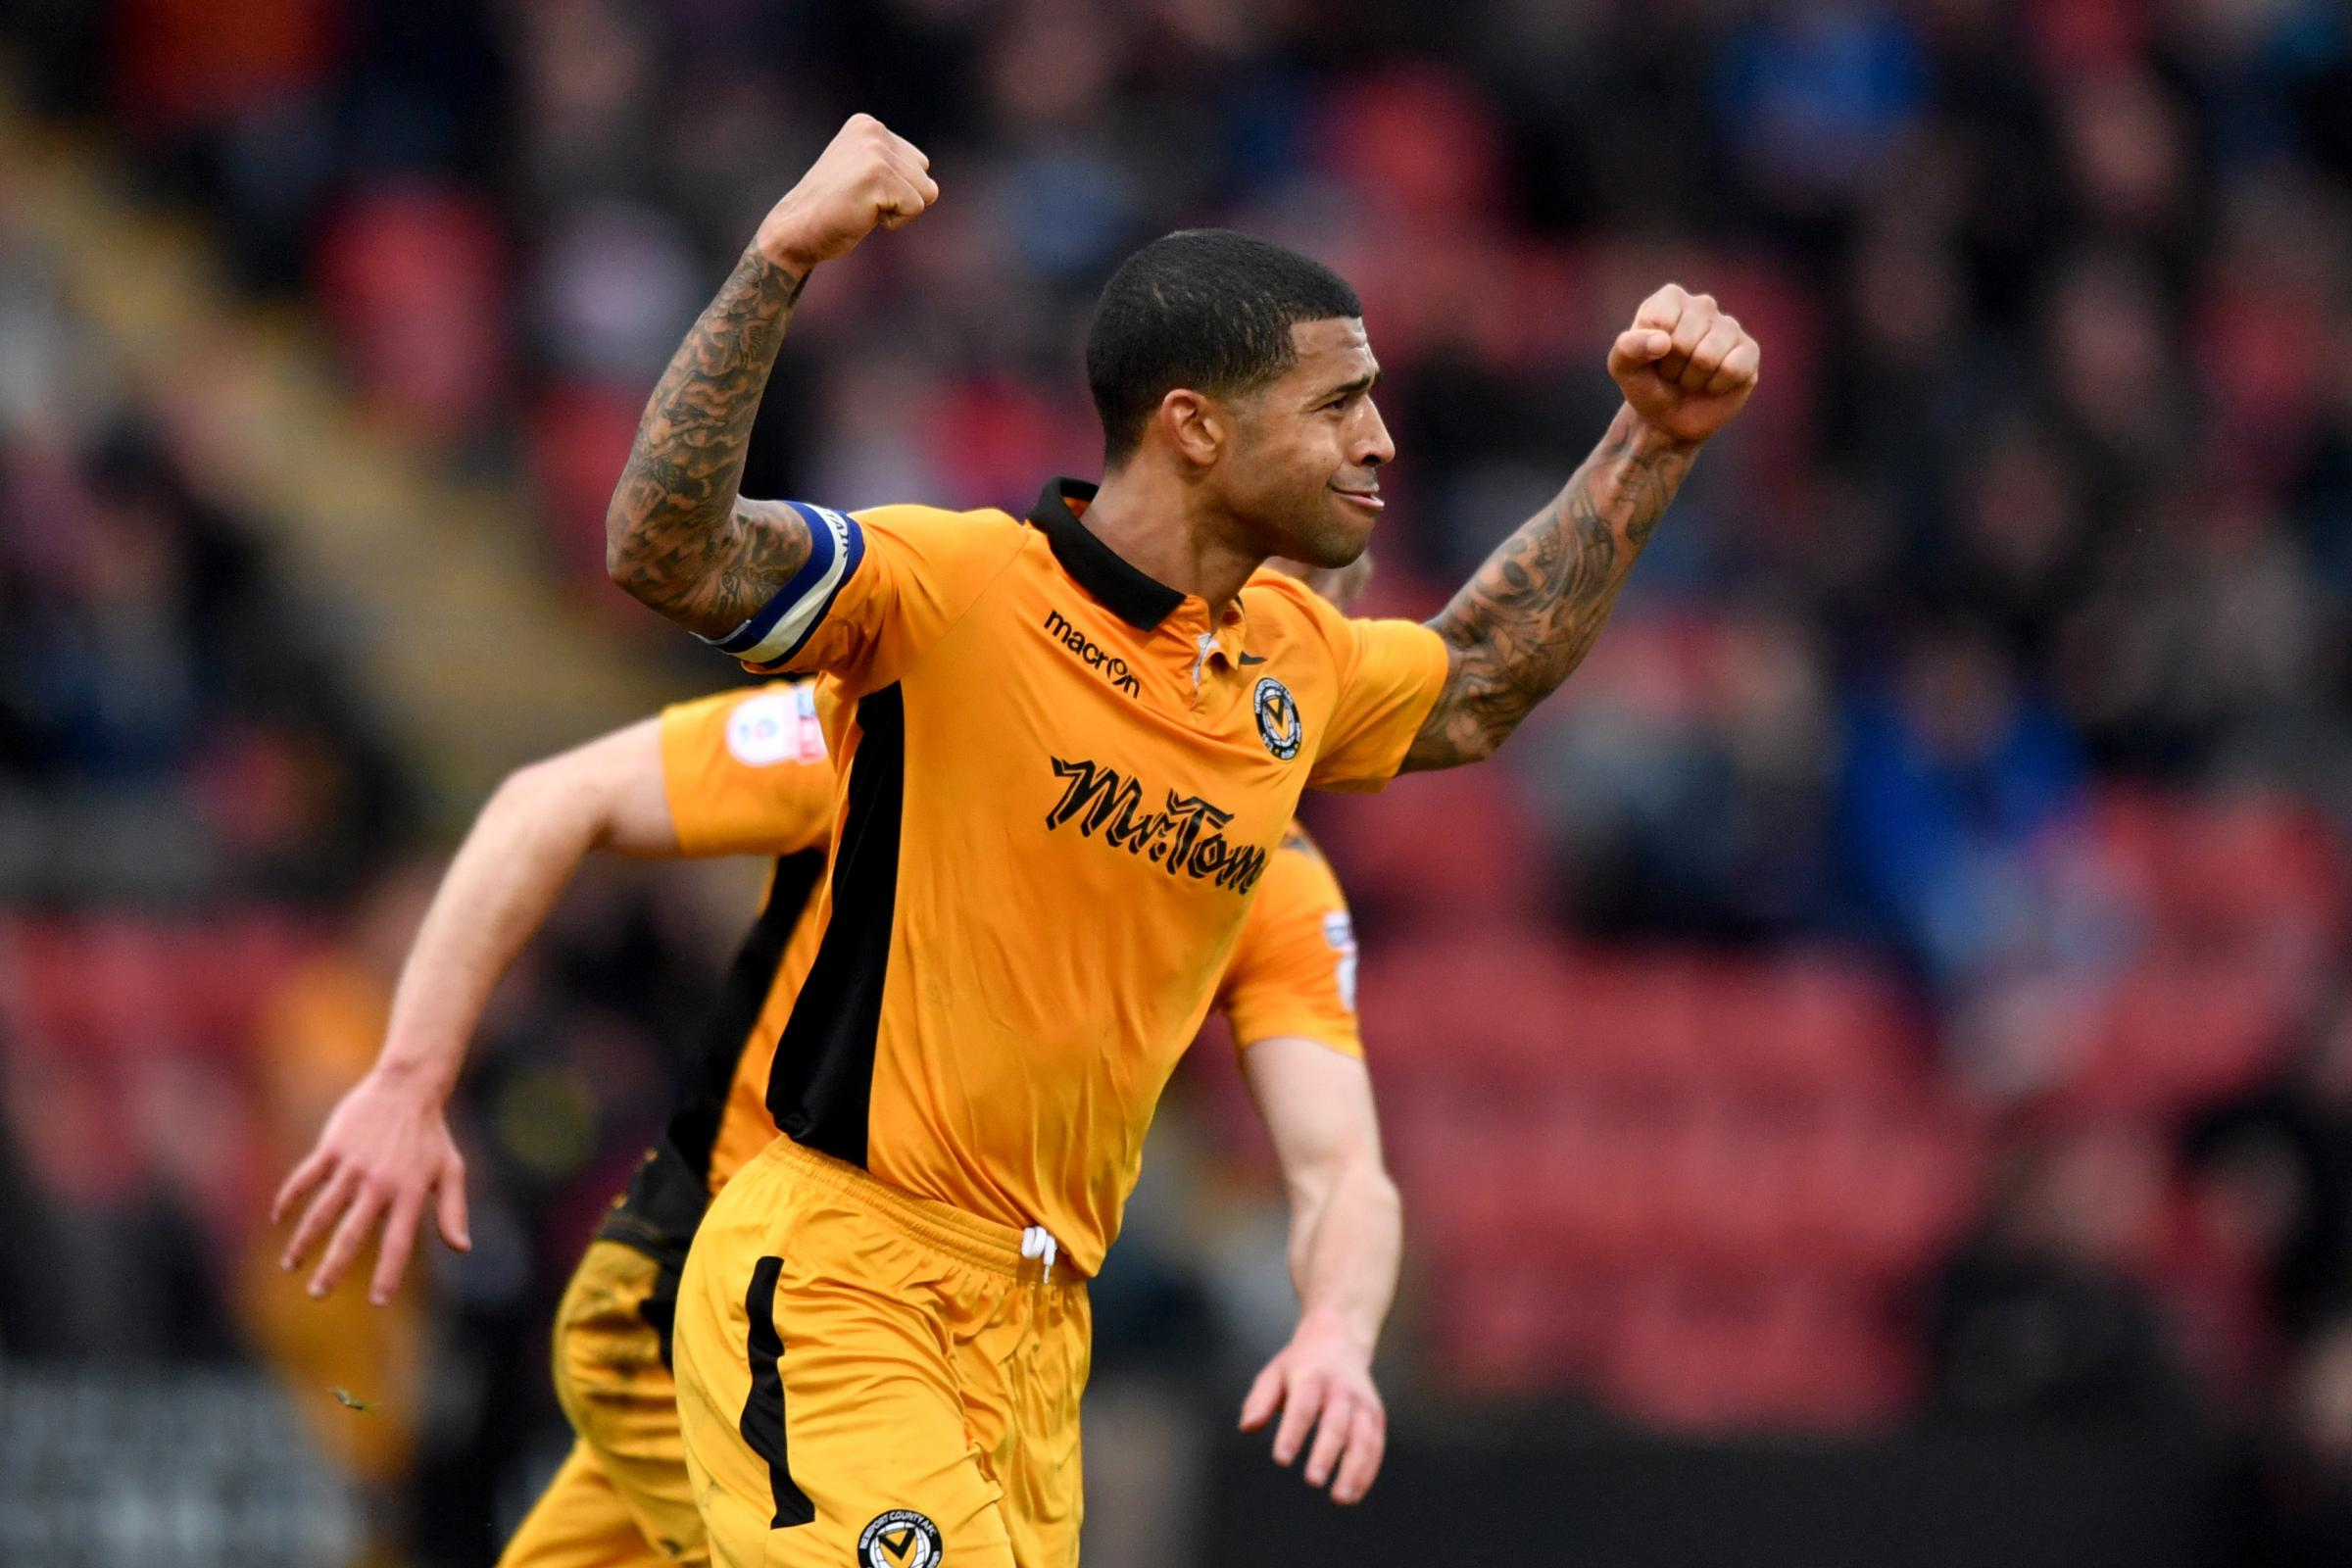 CAPTAIN: Joss Labadie's winner at Crewe Alexandra on March 11 started the Newport County revival under Michael Flynn